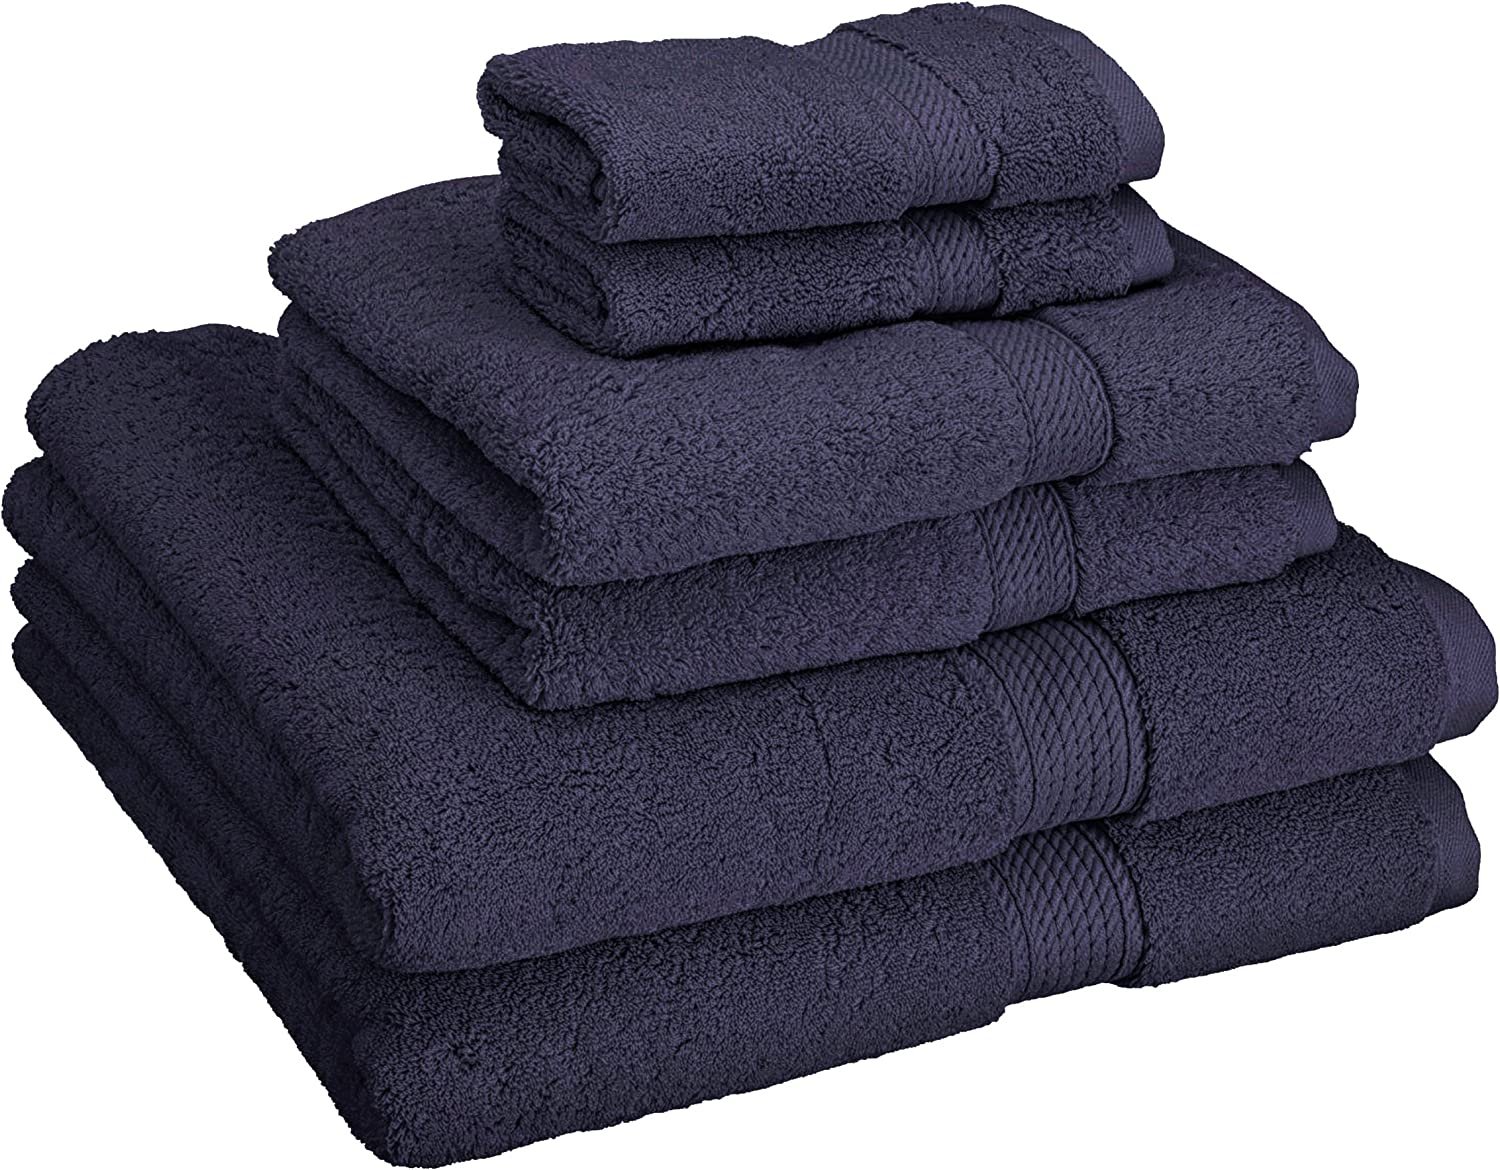 Superior Egyptian Cotton Luxury 900 GSM Towel Set, 6 Piece, Midnight bluee